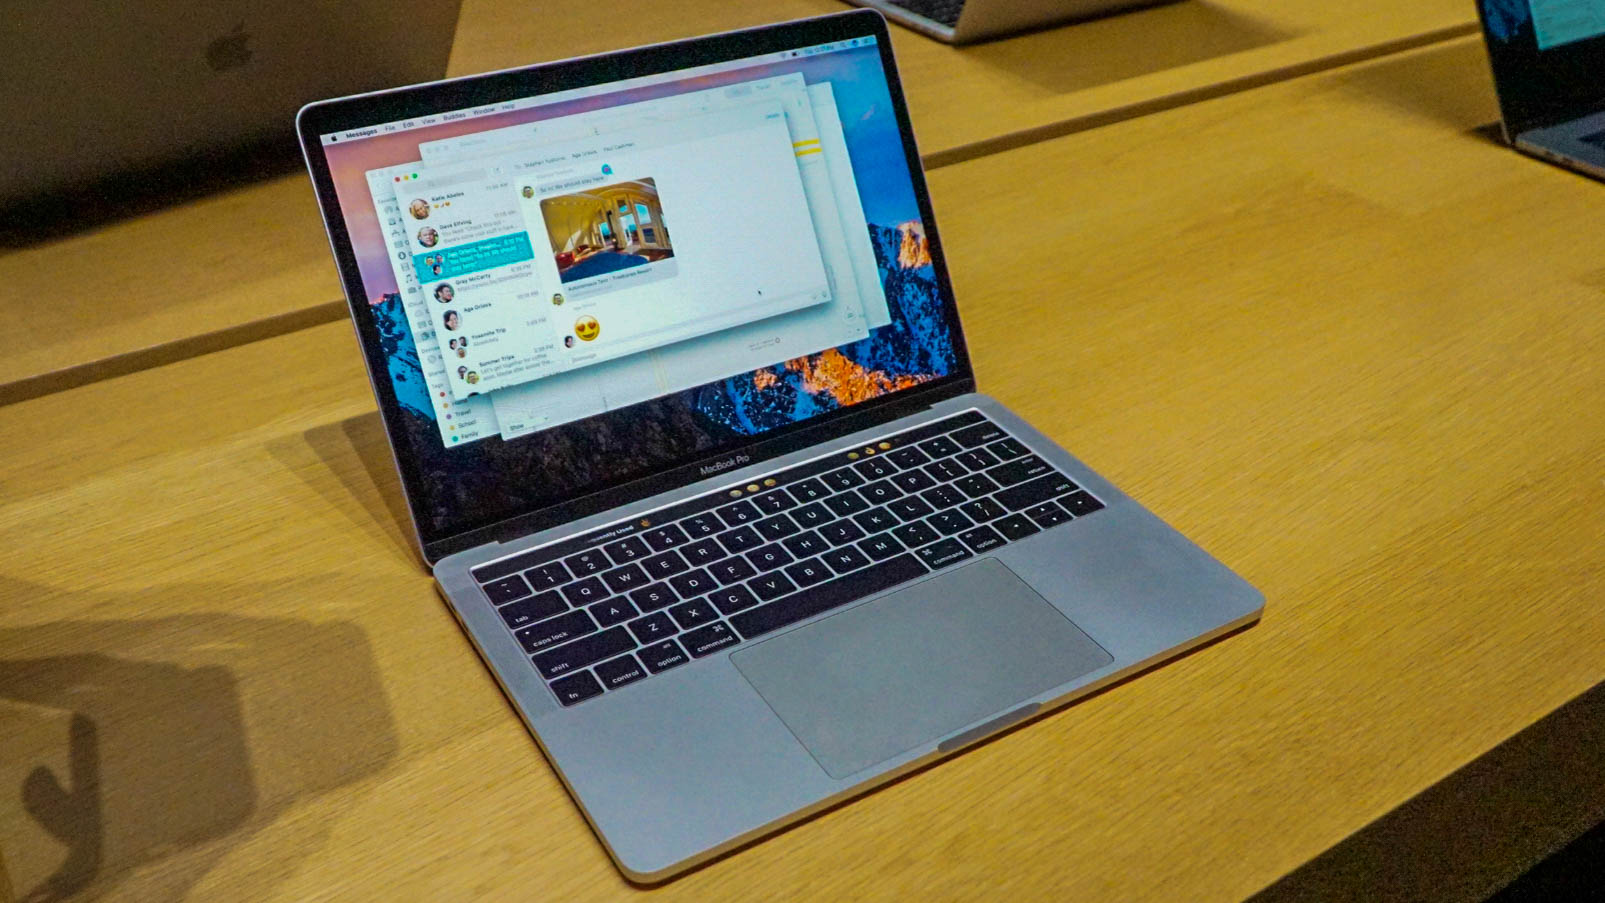 Some New Macbook Pros Suffer From Screen Flicker And Other Video 2 Way Switch Flickering Nasties Techradar